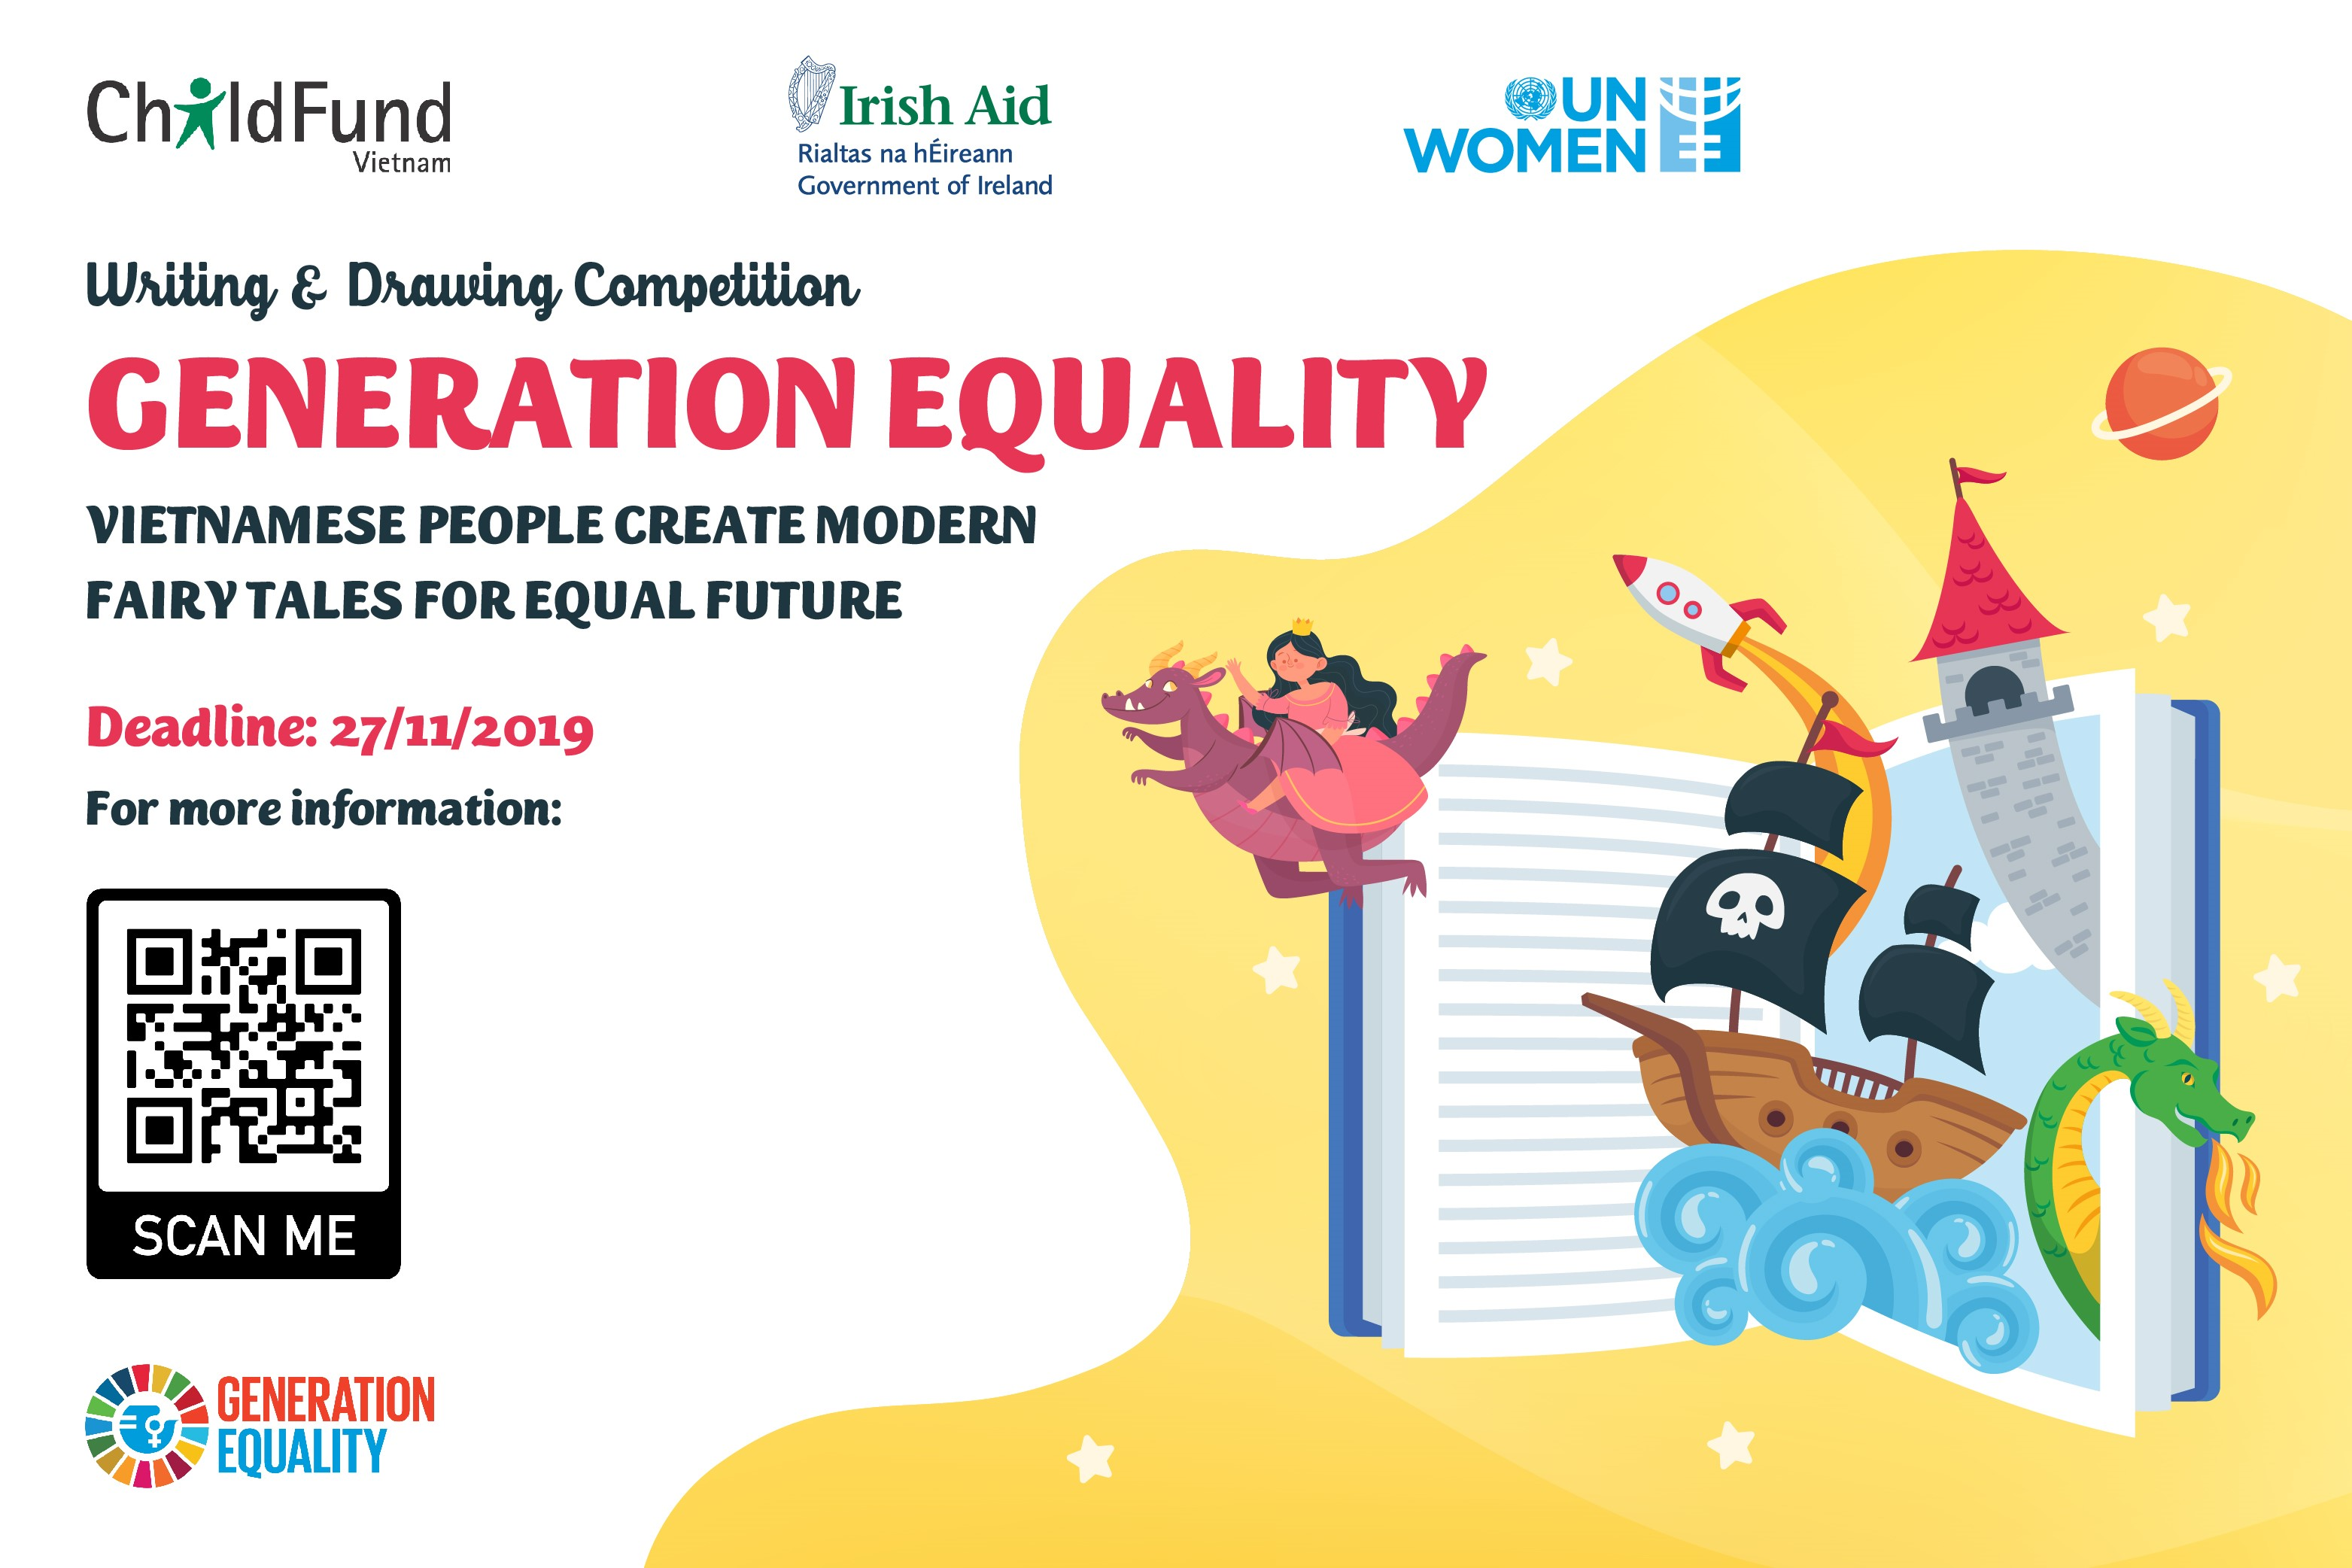 UN Women, Embassy of Ireland and ChildFund Viet Nam are inviting all legal residents in Viet Nam, especially children and the youth, with no age limation, to participate in a new contest to eliminate gender stigma and stereotypes in fairy tales.